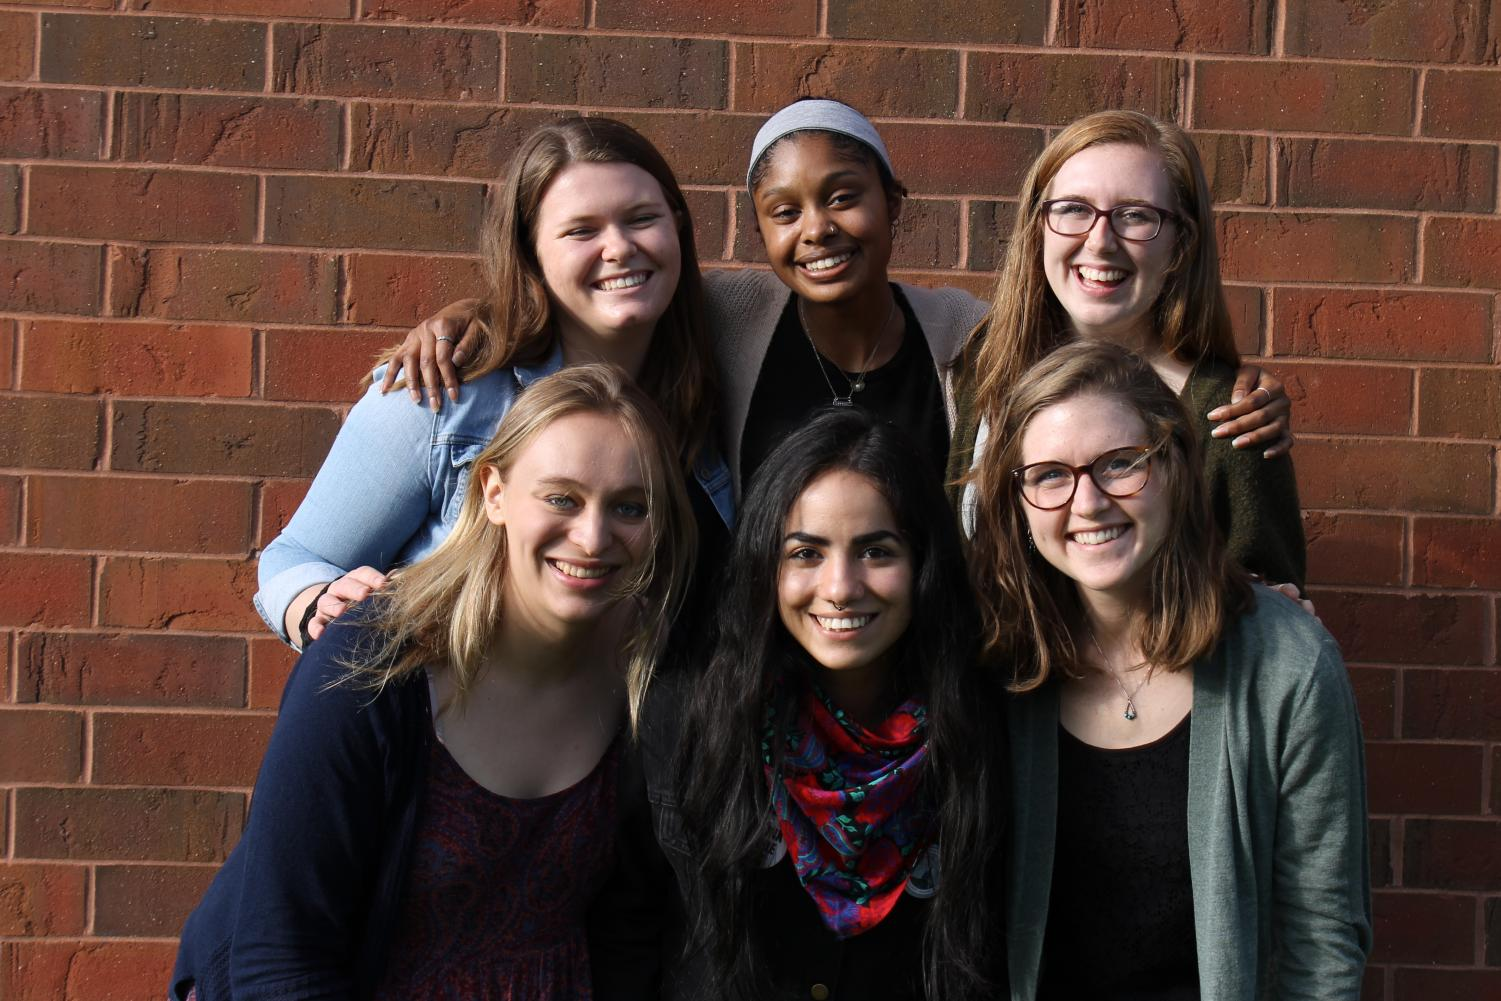 The senior editorial staff is composed of [LEFT TO RIGHT, TOP TO BOTTOM] Lyndsay Monsen ('19), Shasa Sartin ('19), Elyse Grothaus ('19), Katrina Meyer ('19), Ana López ('19), and Martel DenHartog ('19).